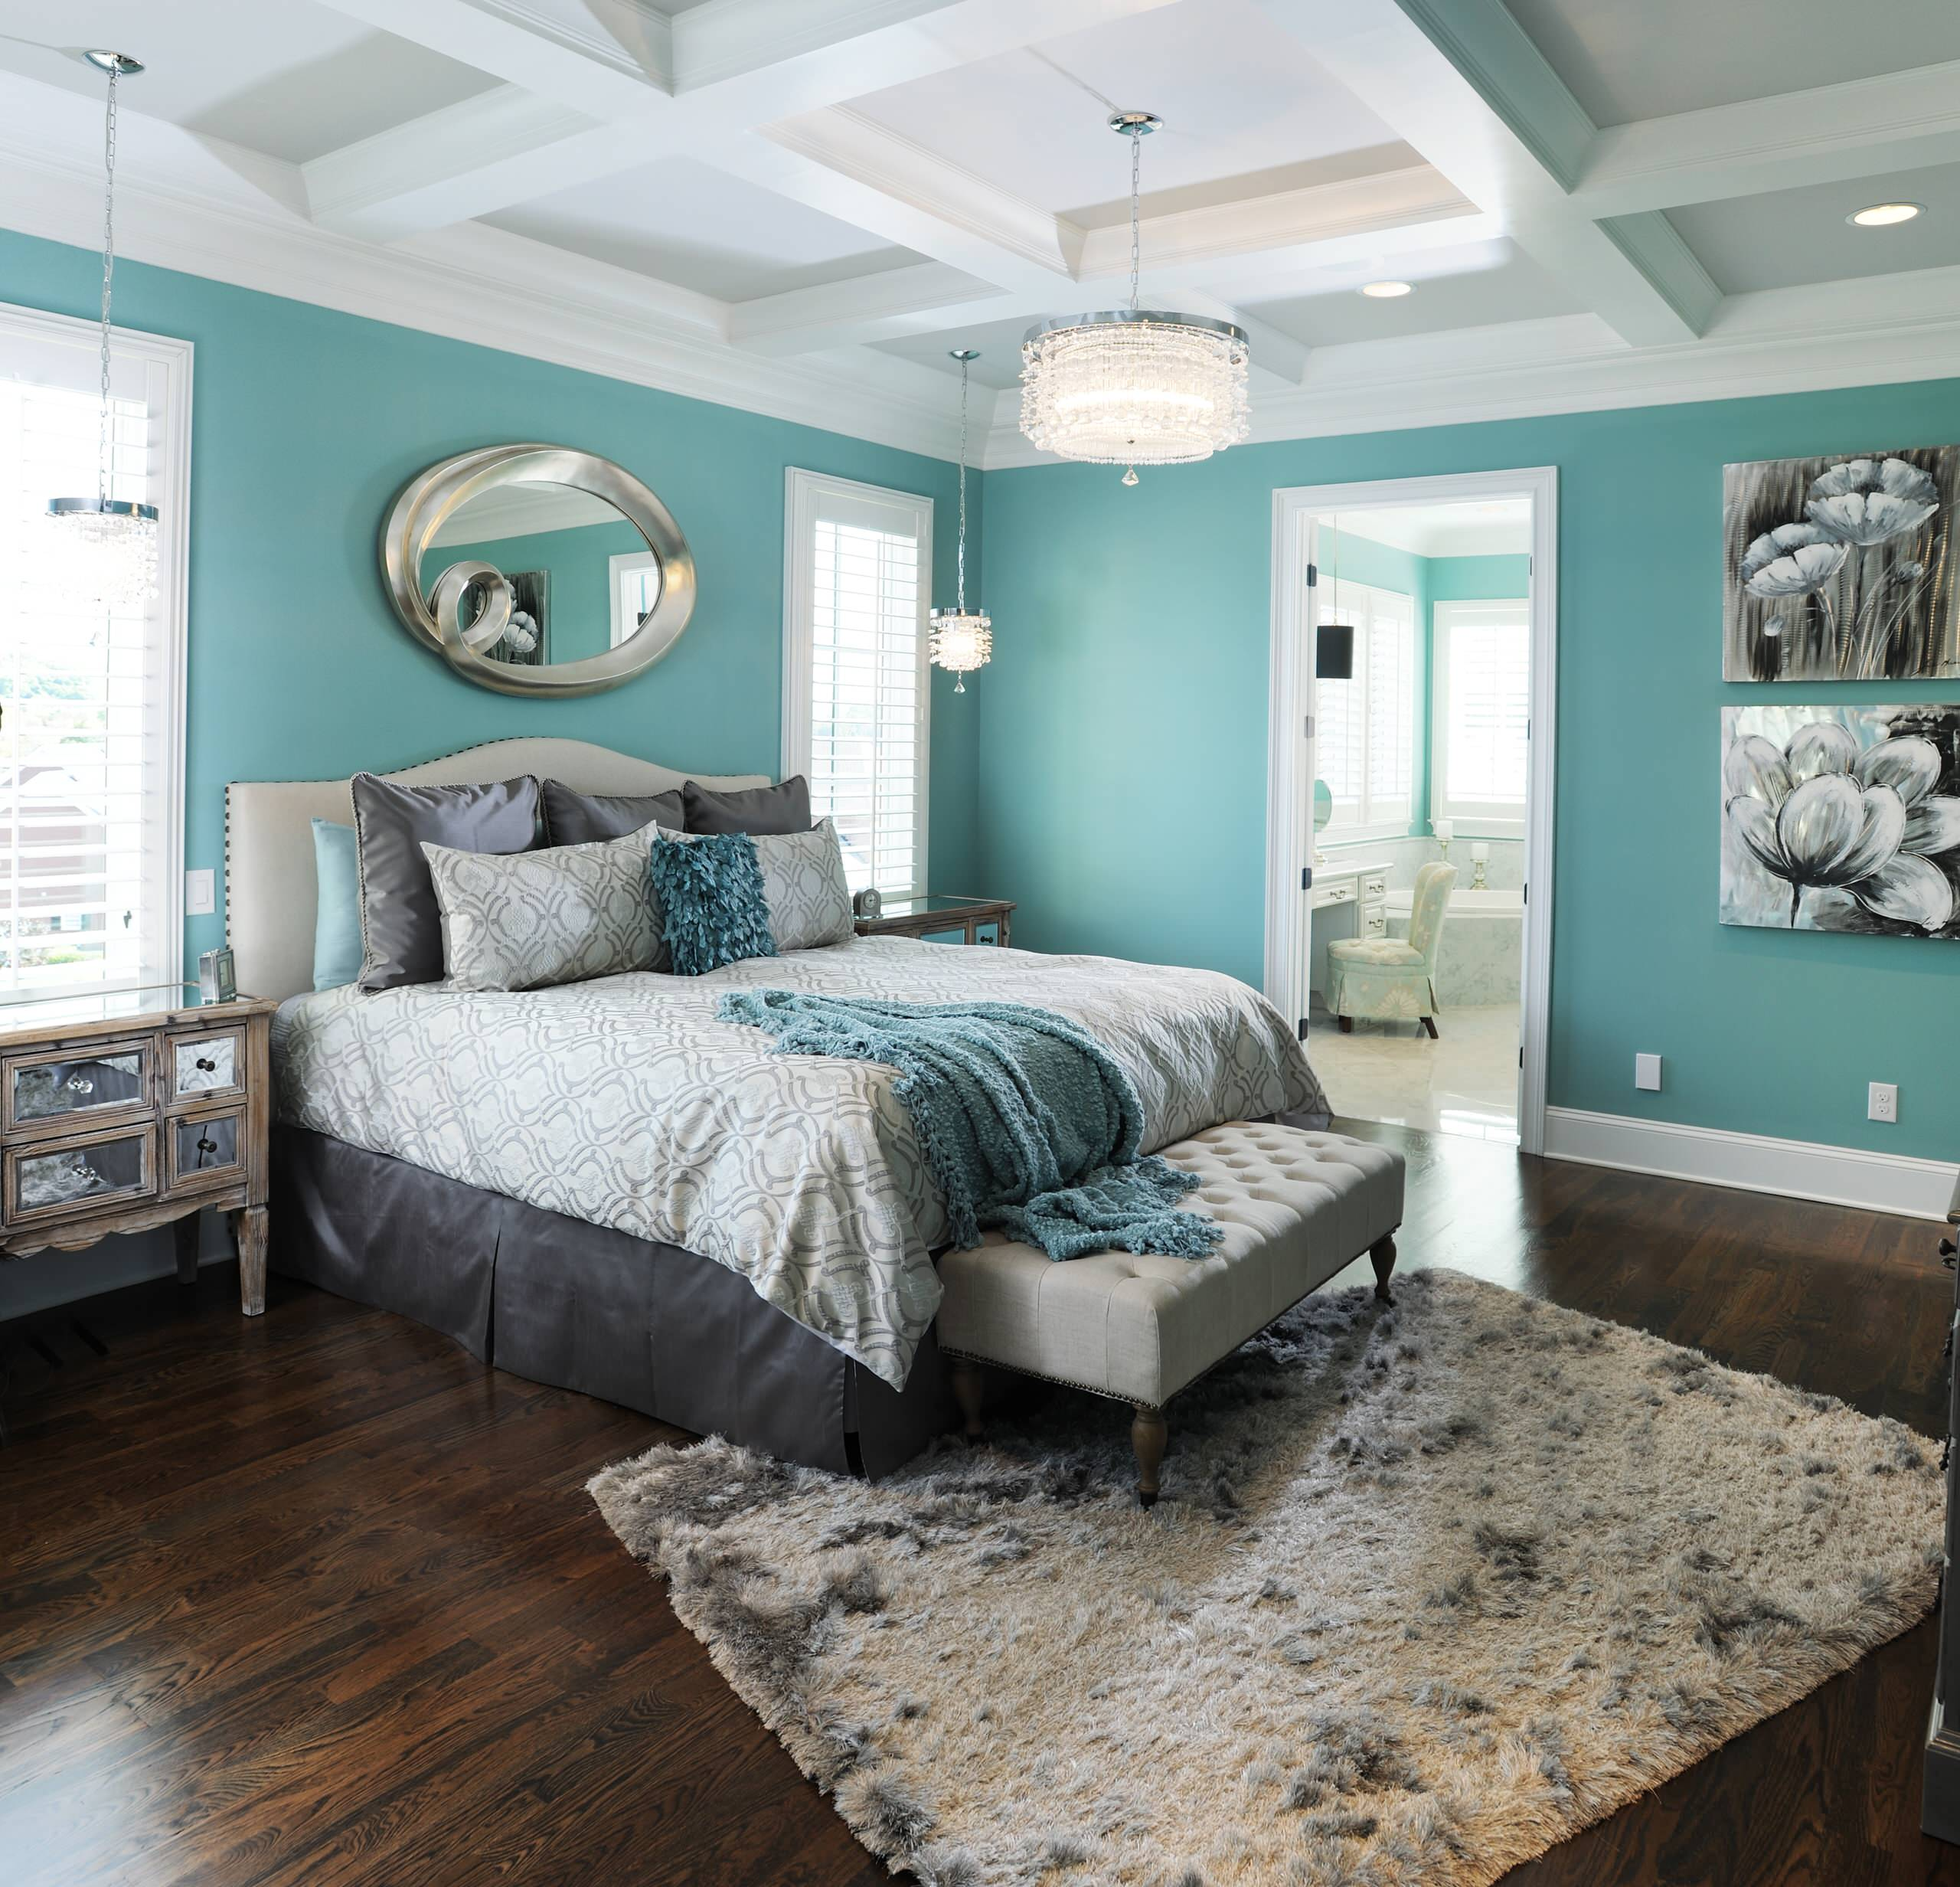 75 Beautiful Turquoise Bedroom Pictures & Ideas   Houzz